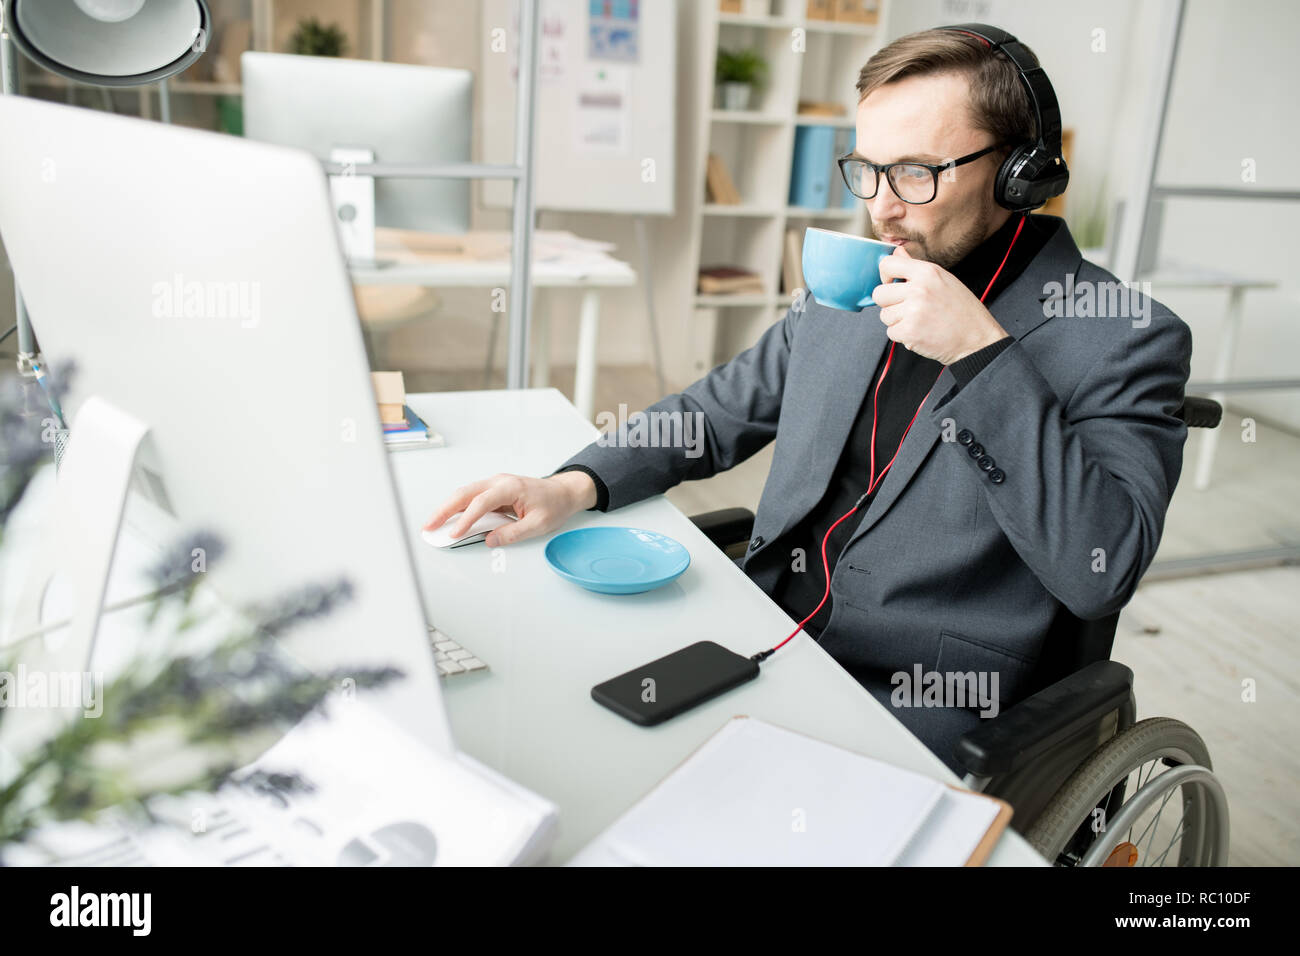 Disabled businessman working at office - Stock Image